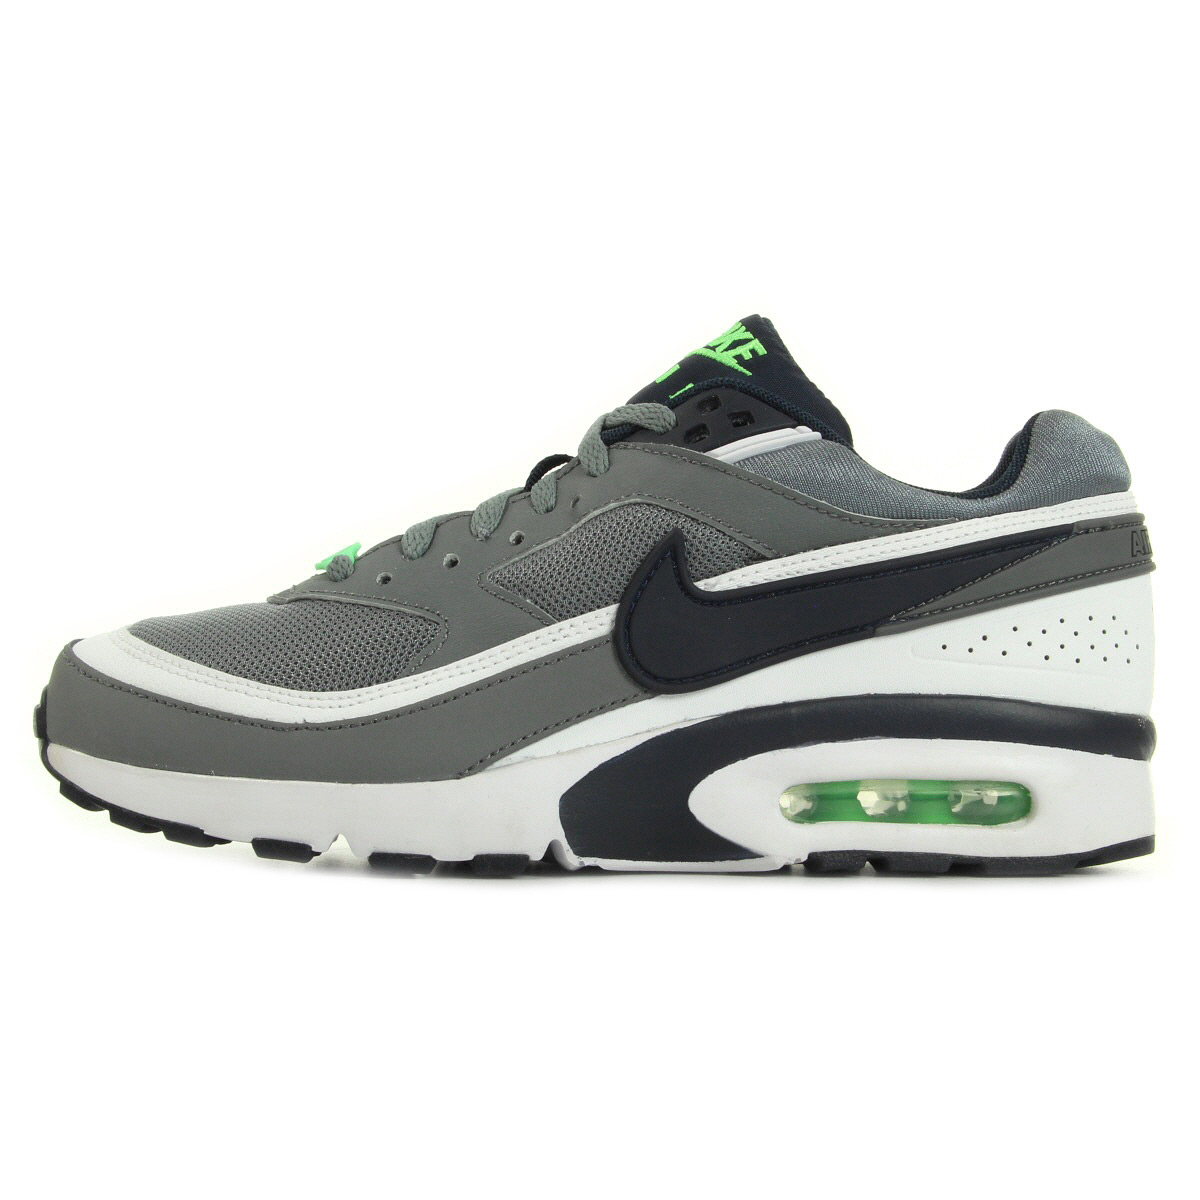 nike air max classic bw 820344004 chaussures homme homme. Black Bedroom Furniture Sets. Home Design Ideas